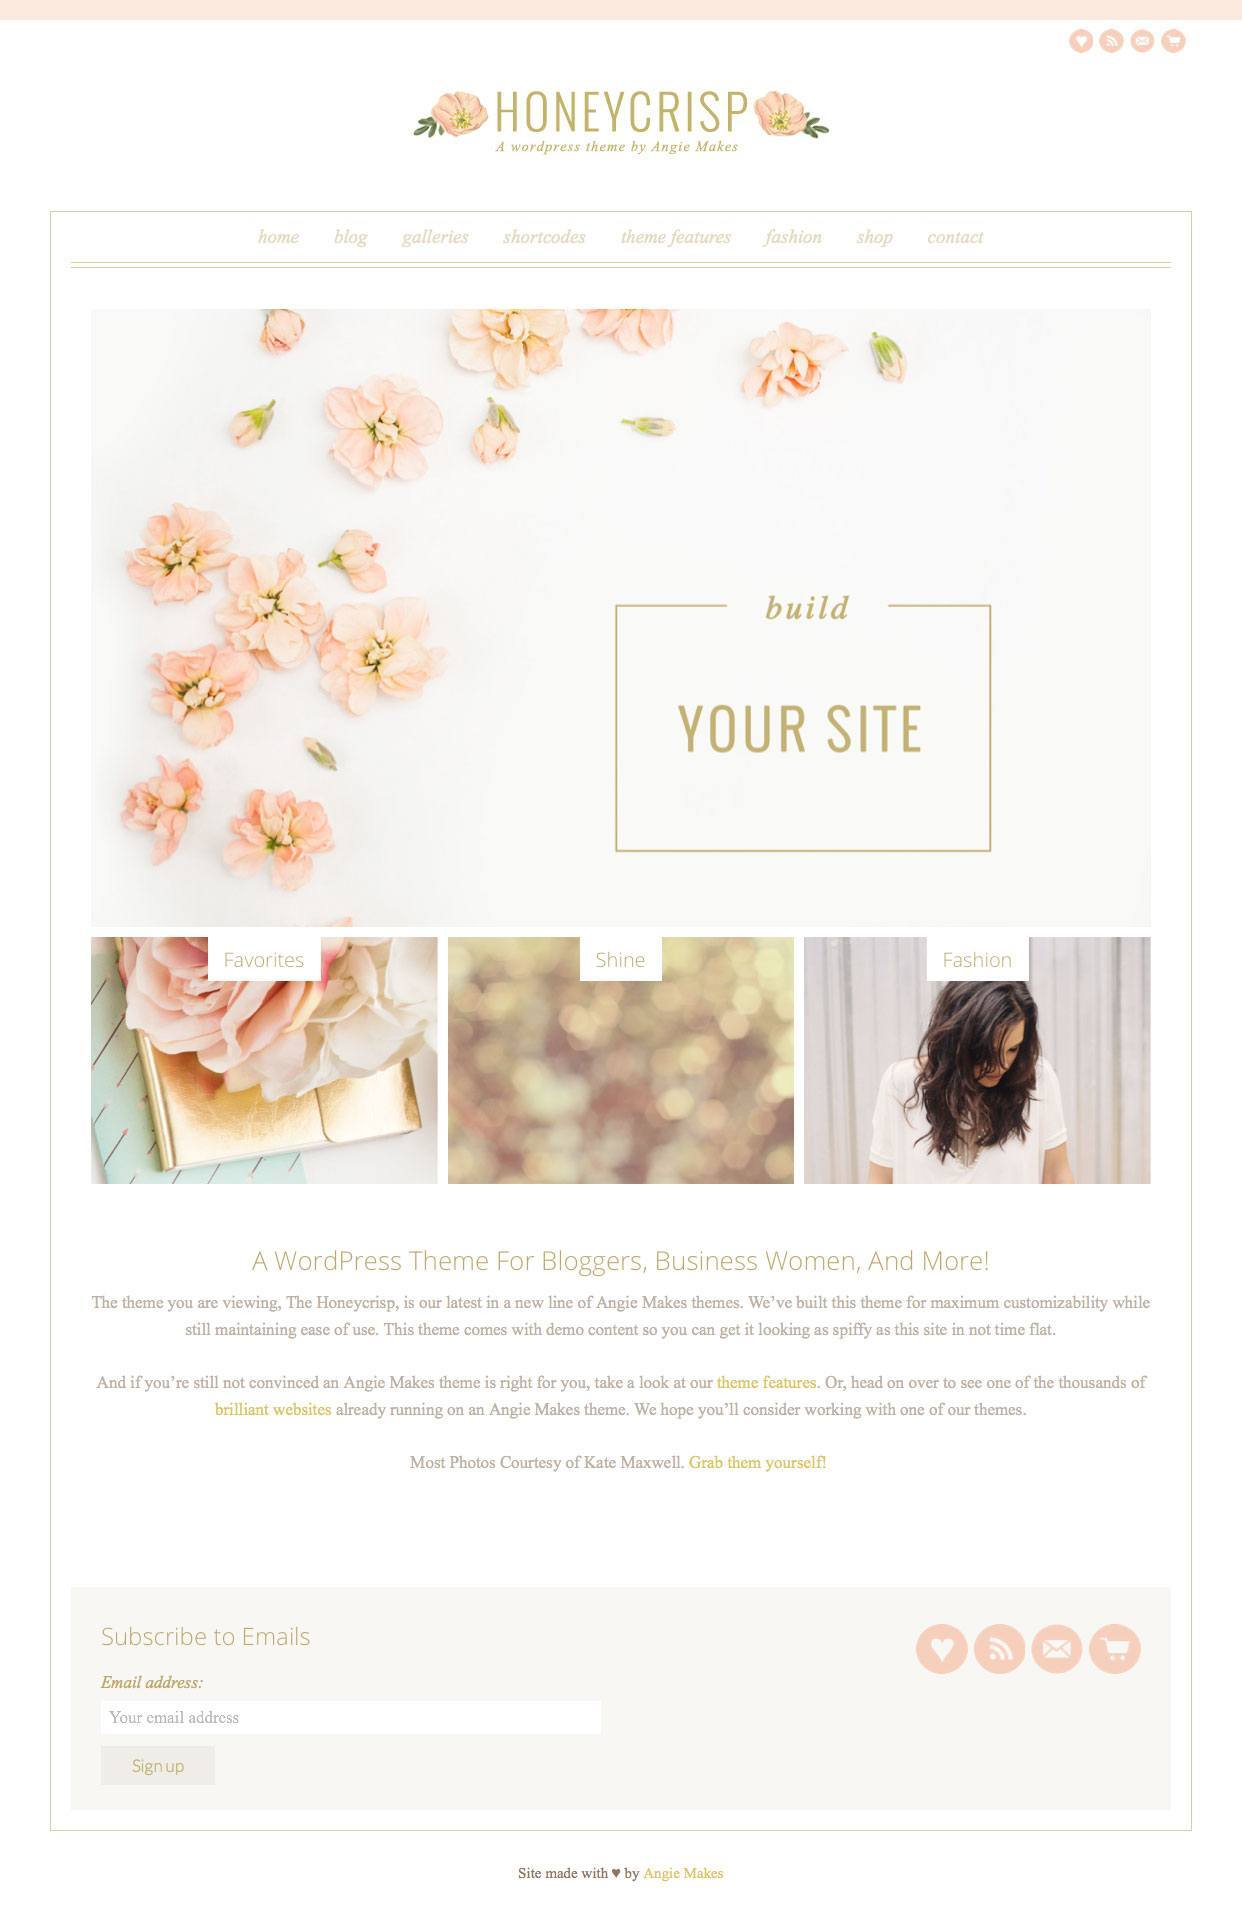 Honeycrisp Pretty Girly Blog WordPress Theme - WPExplorer Girly Blog Shop